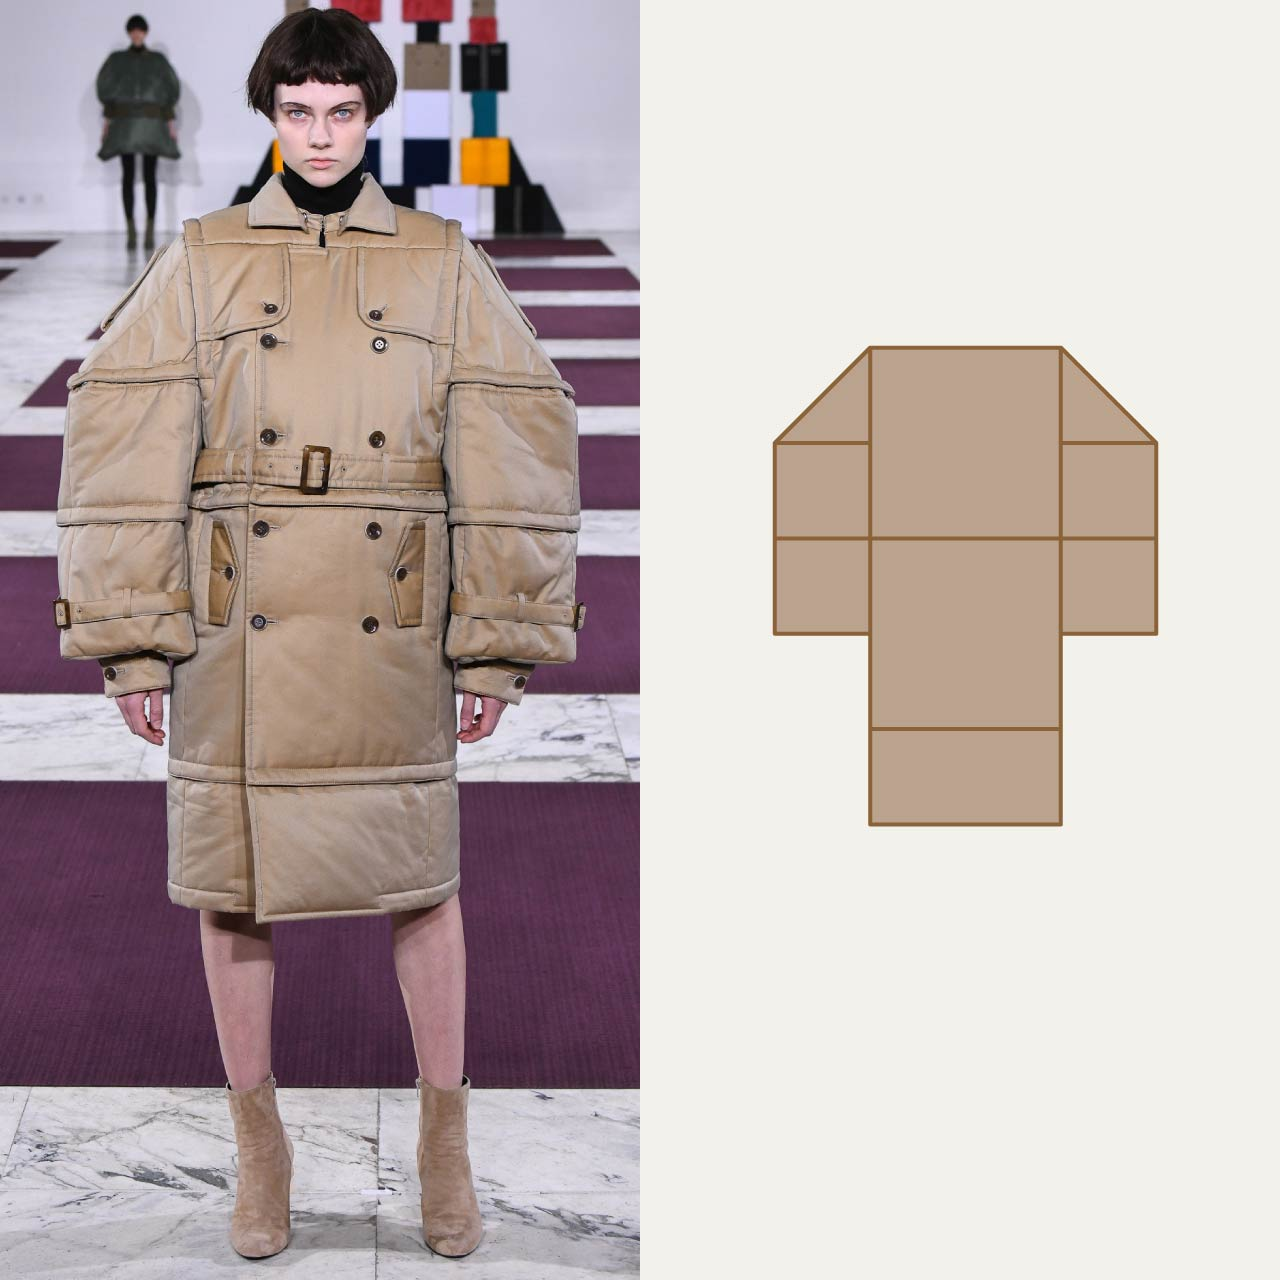 A Modular Anrealage Silhouette Through Blocks | The Cutting Class. A classic trench deconstructed into blocks.